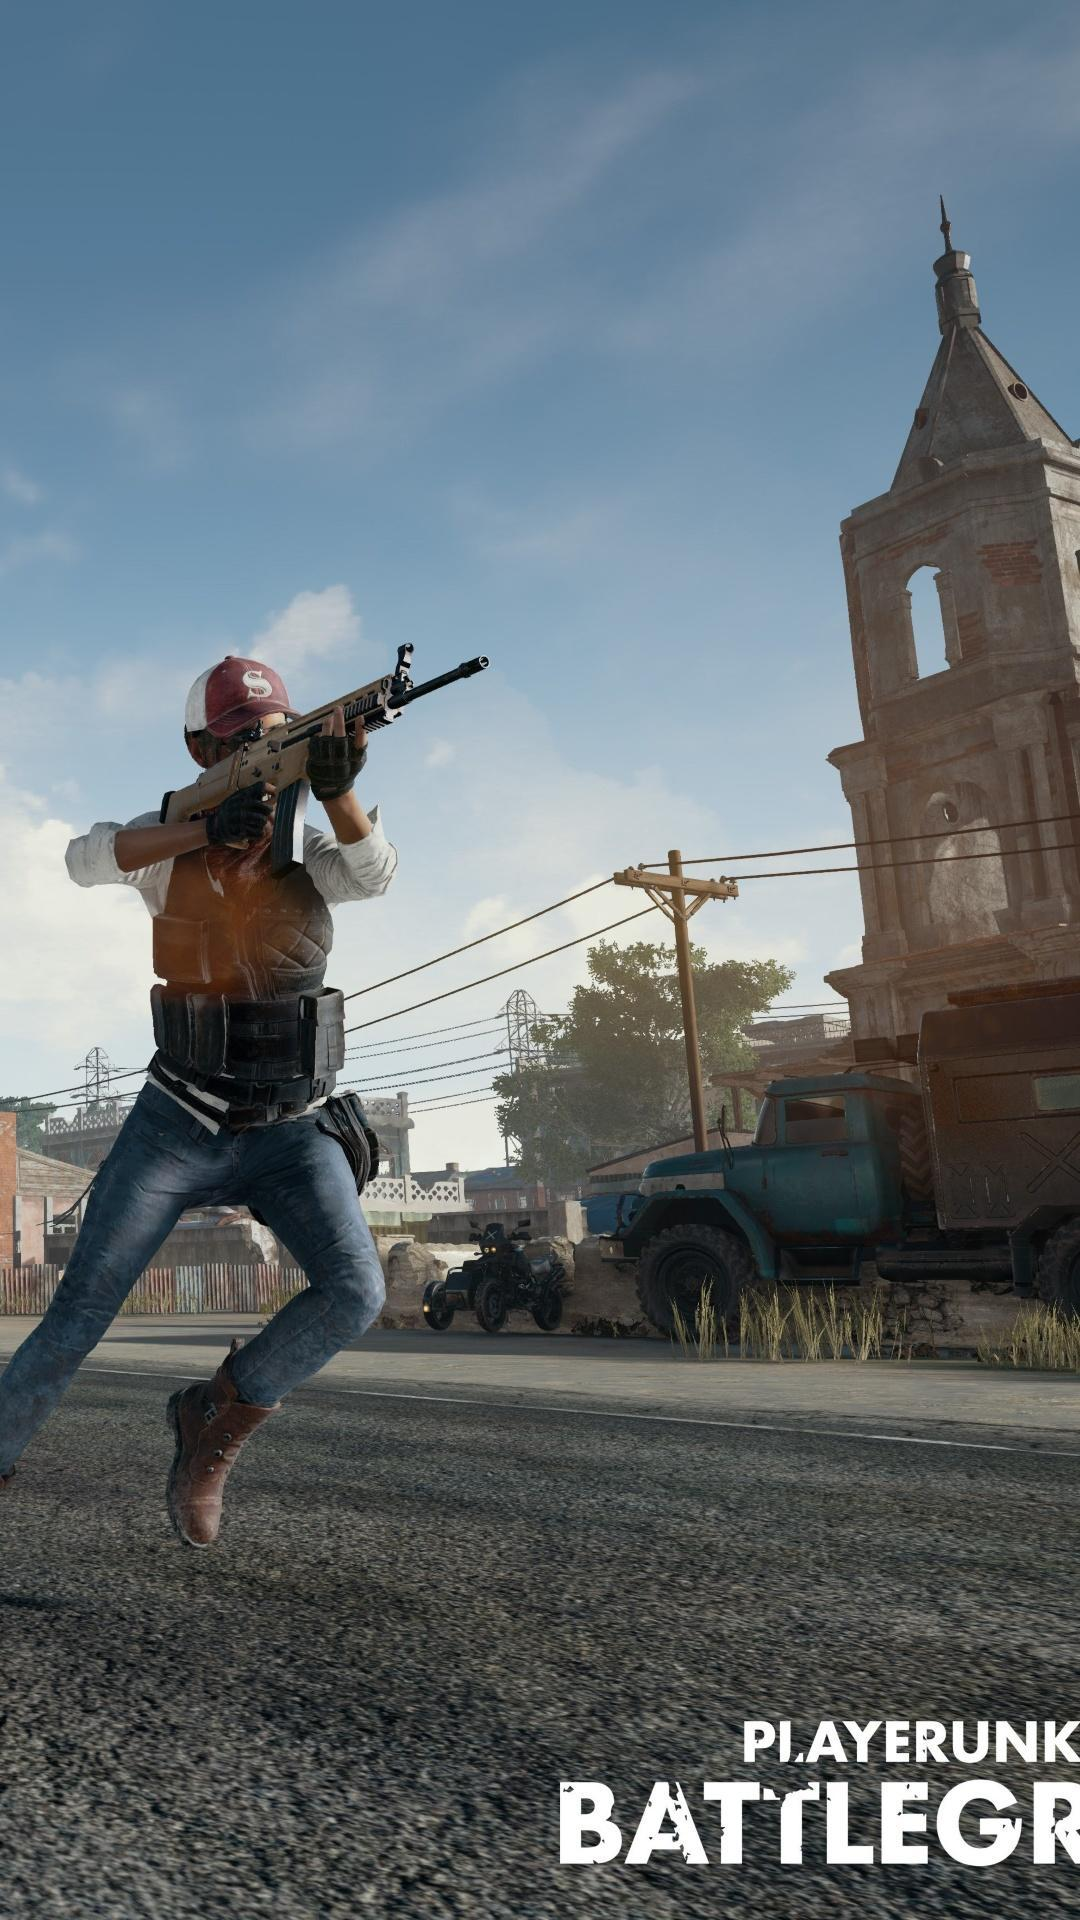 Player Pubg Wallpaper Hd Offline For Android Apk Download